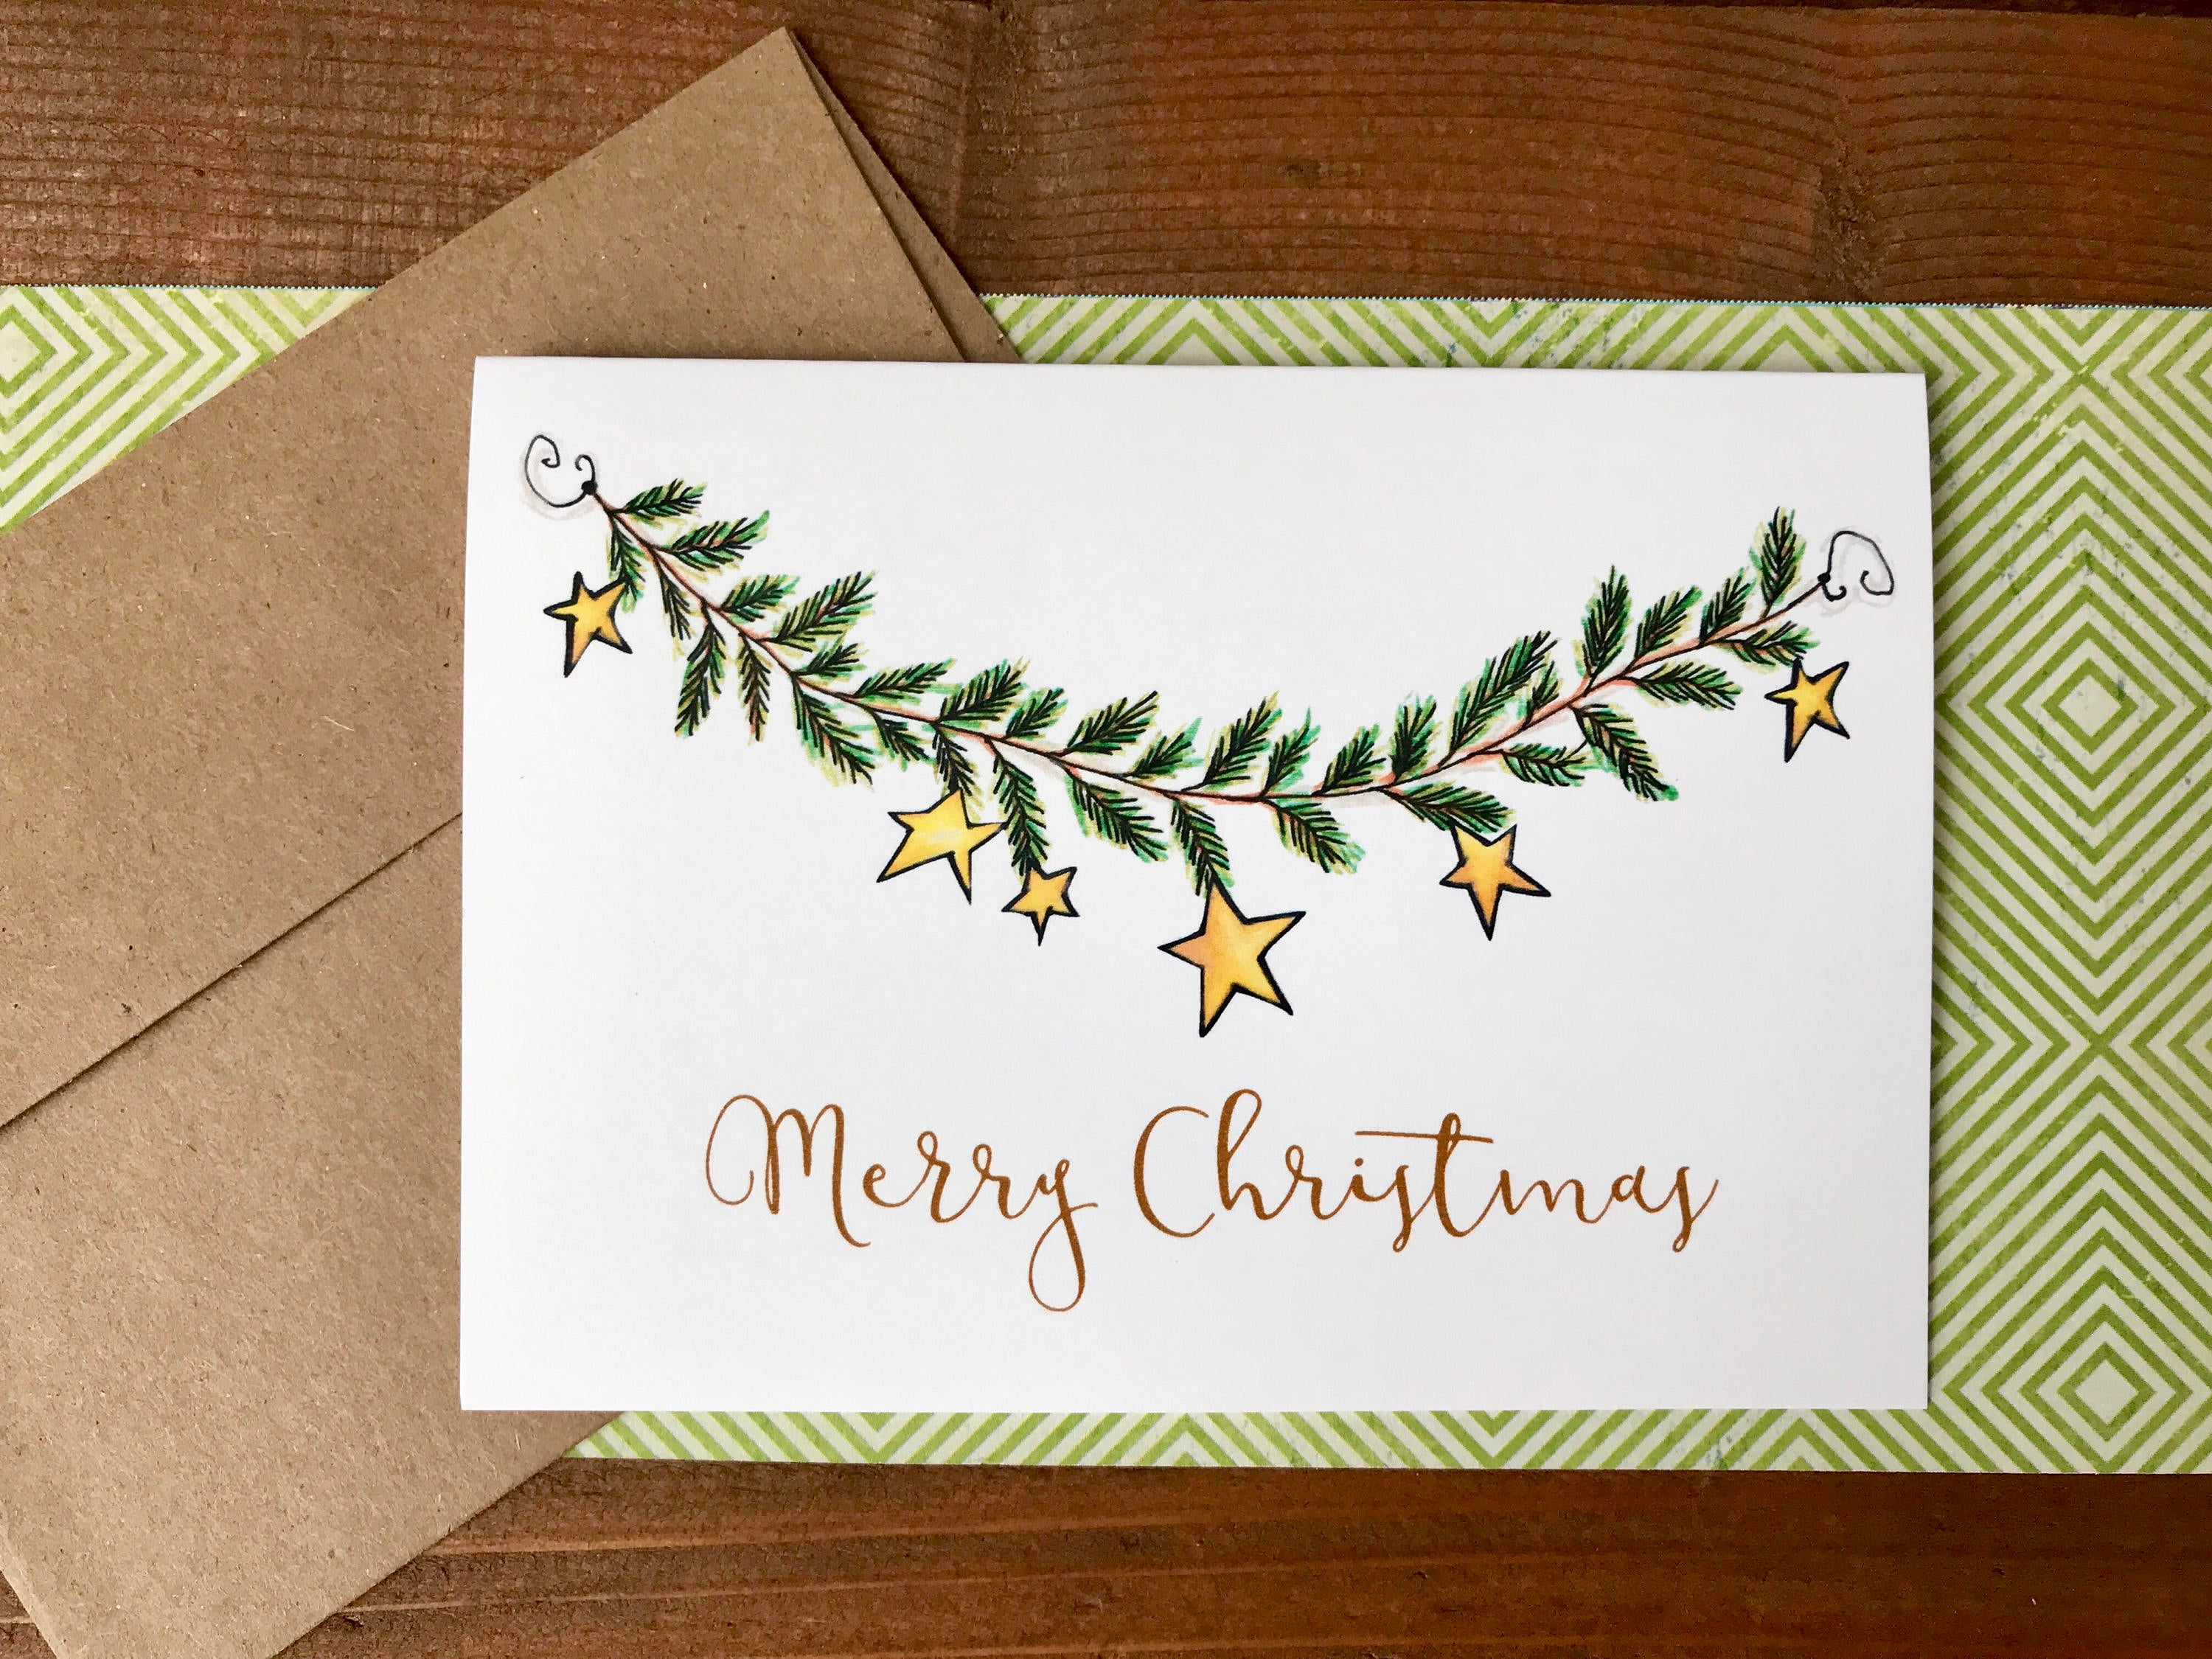 Garland Holiday Cards, Choose Your Message - Boxed Set of 8